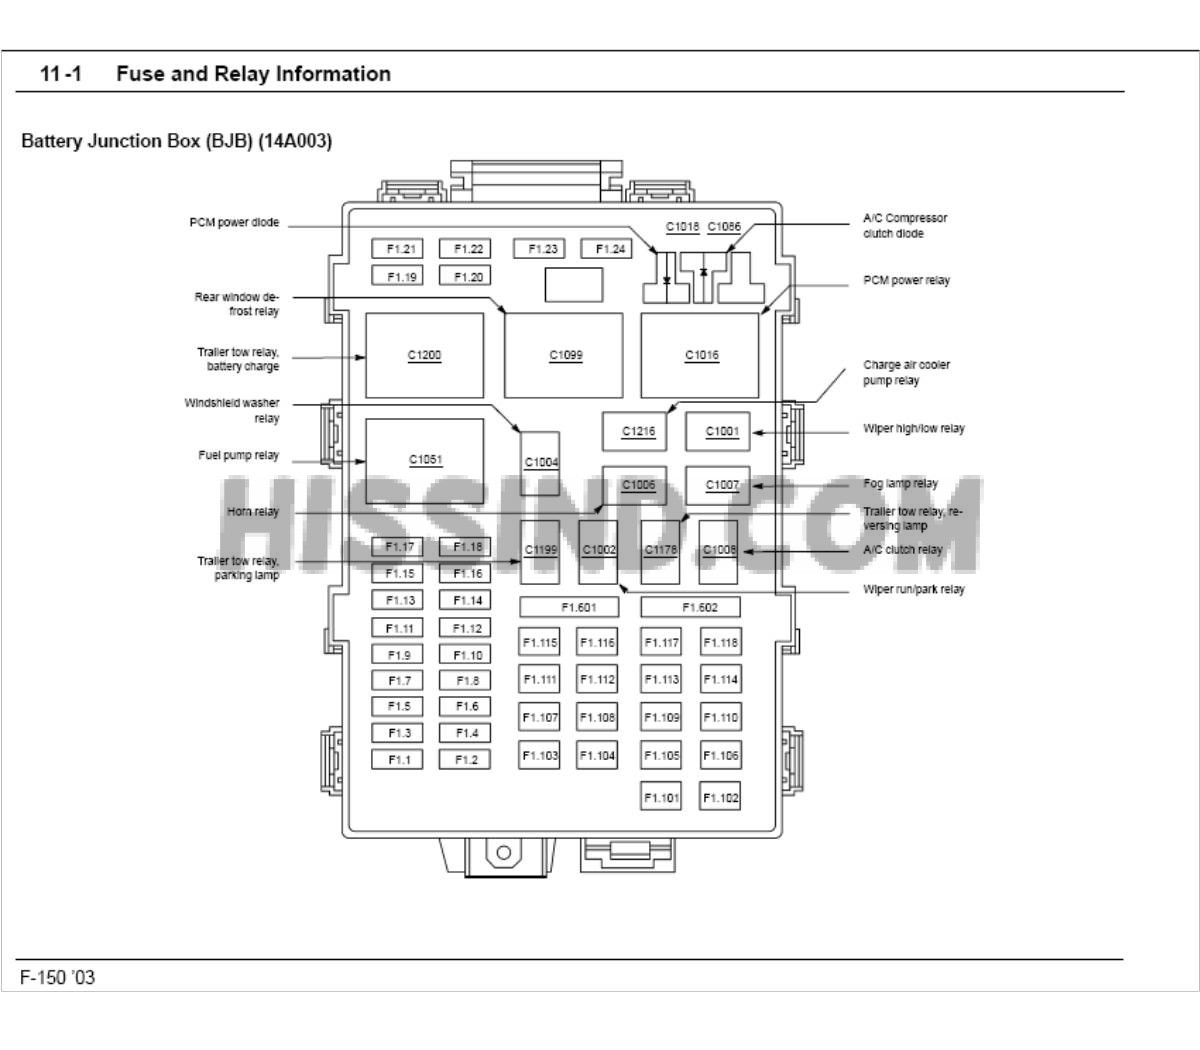 2000 f150 fuse box diagram trusted wiring diagram 2004 hyundai santa fe fuse box diagram 05 [ 1200 x 1050 Pixel ]